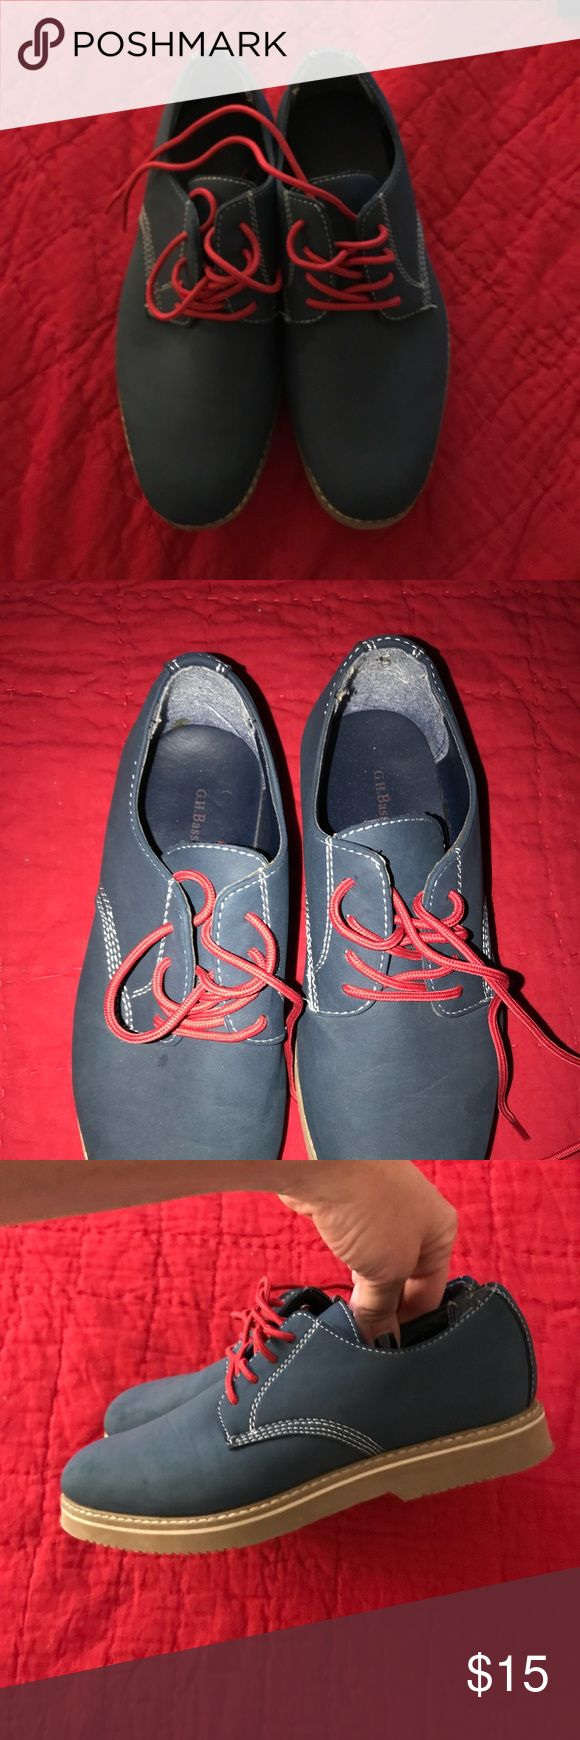 Boys Bass Lace Oxfords Worn Twice blue suede Bass Baxter oxfords. Bass Shoes Dress Shoes